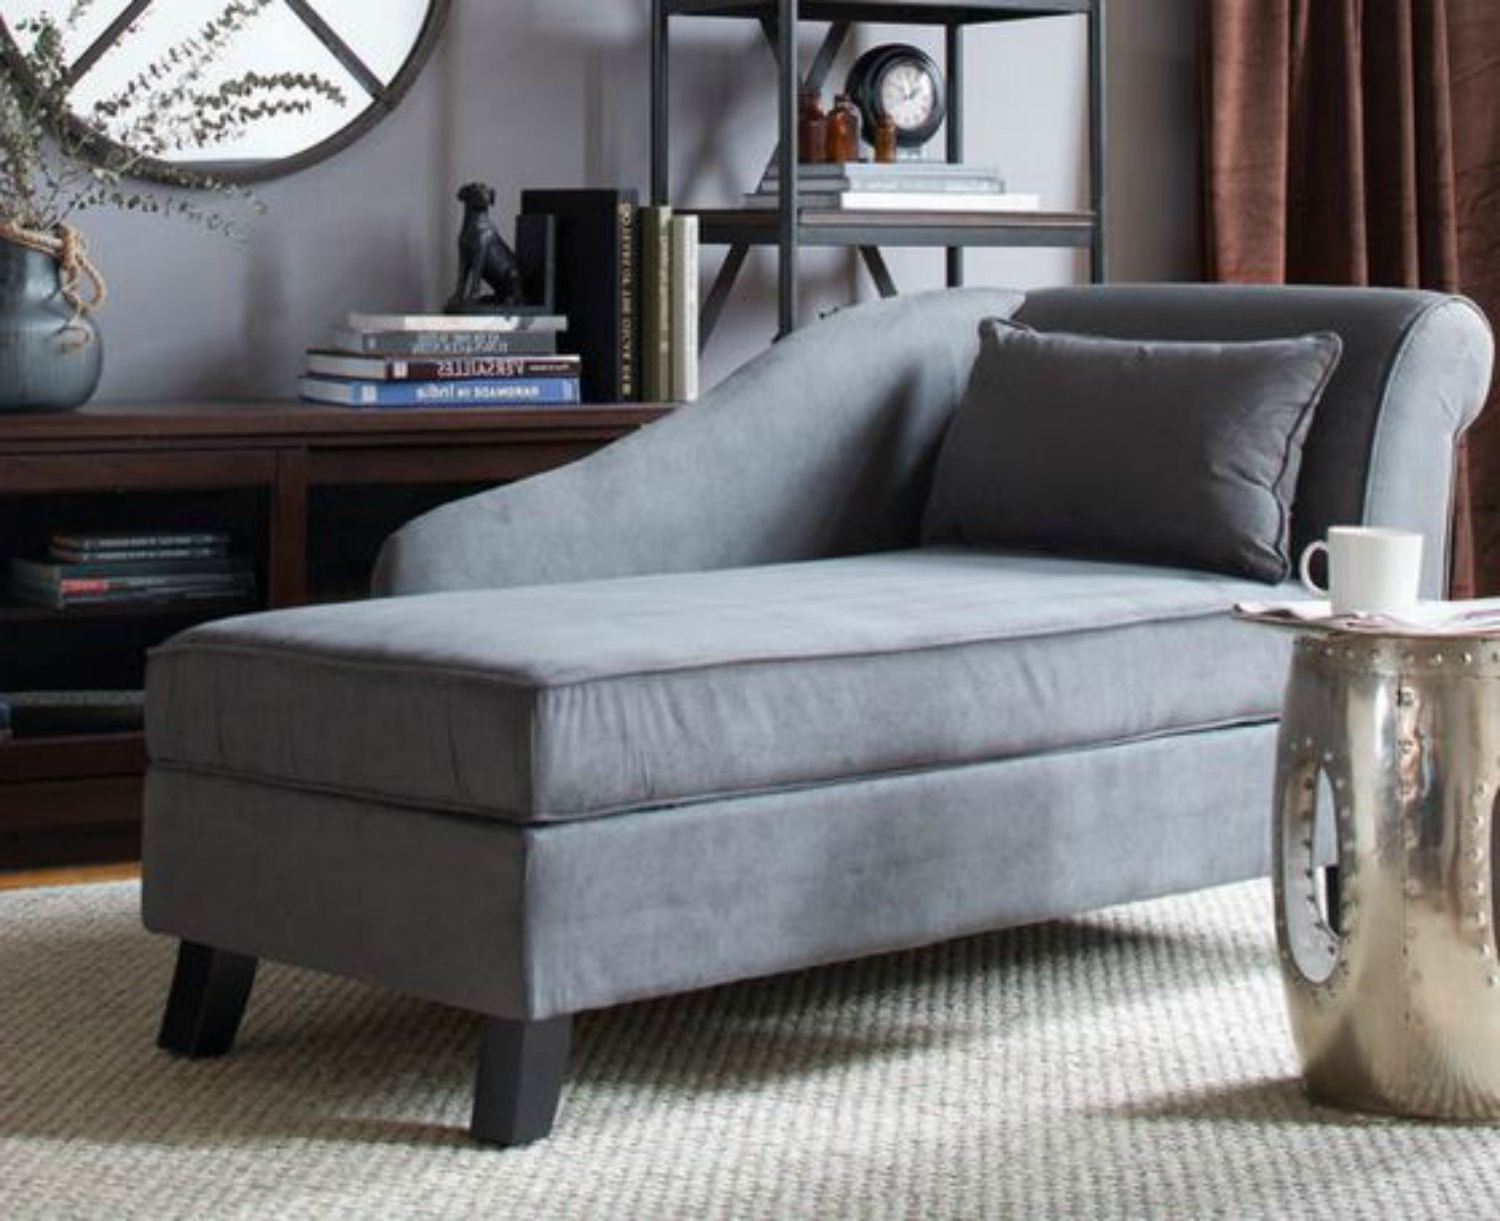 2018 Amazon: Storage Chaise Lounge Chair  This Microfiber Throughout Upholstered Chaise Lounge Chairs (View 1 of 15)